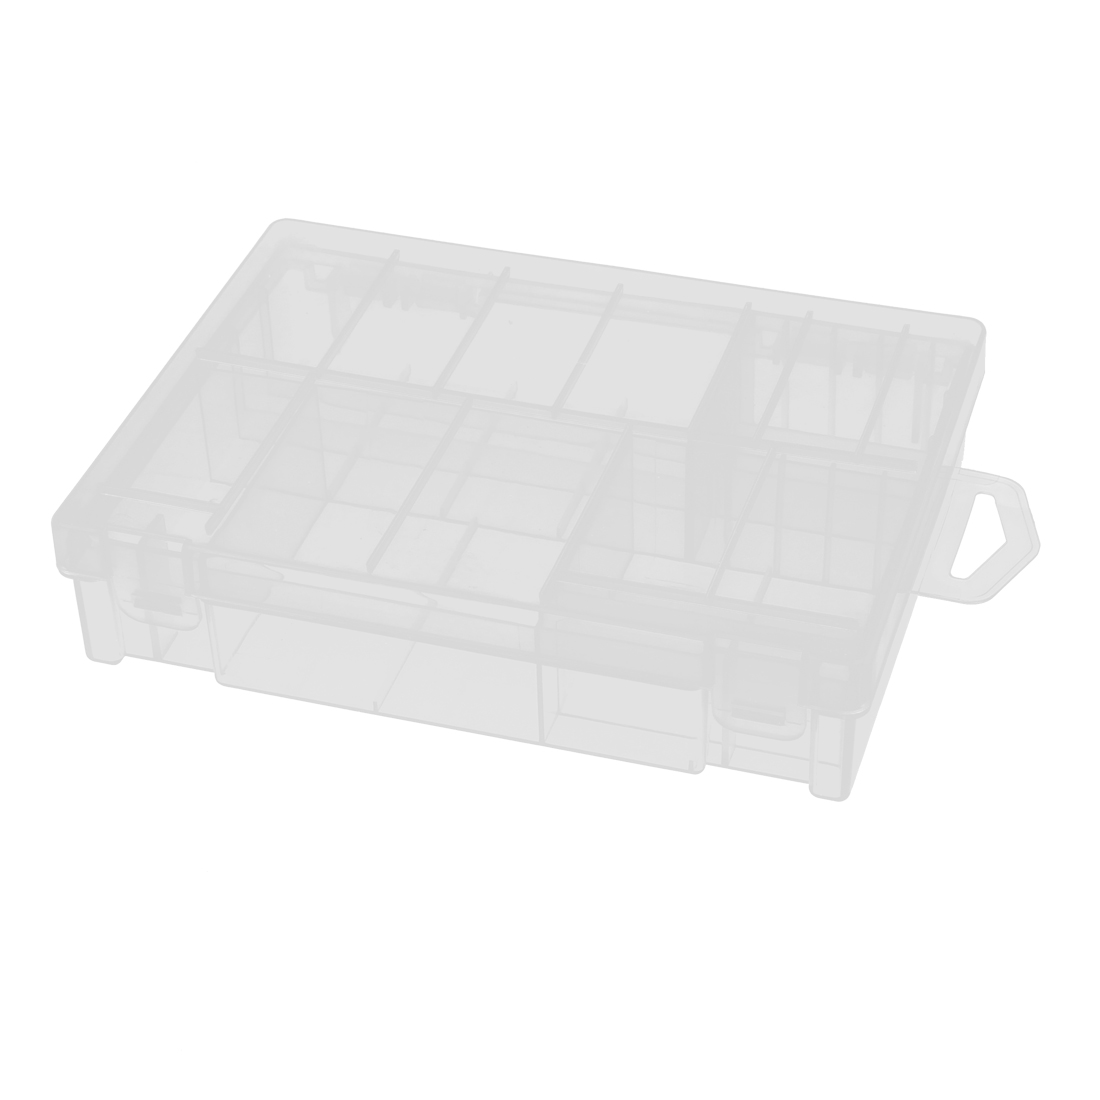 Clear Plastic Rectangle Battery Storage Box Container Holder 16cm x 12cm x 3.6cm